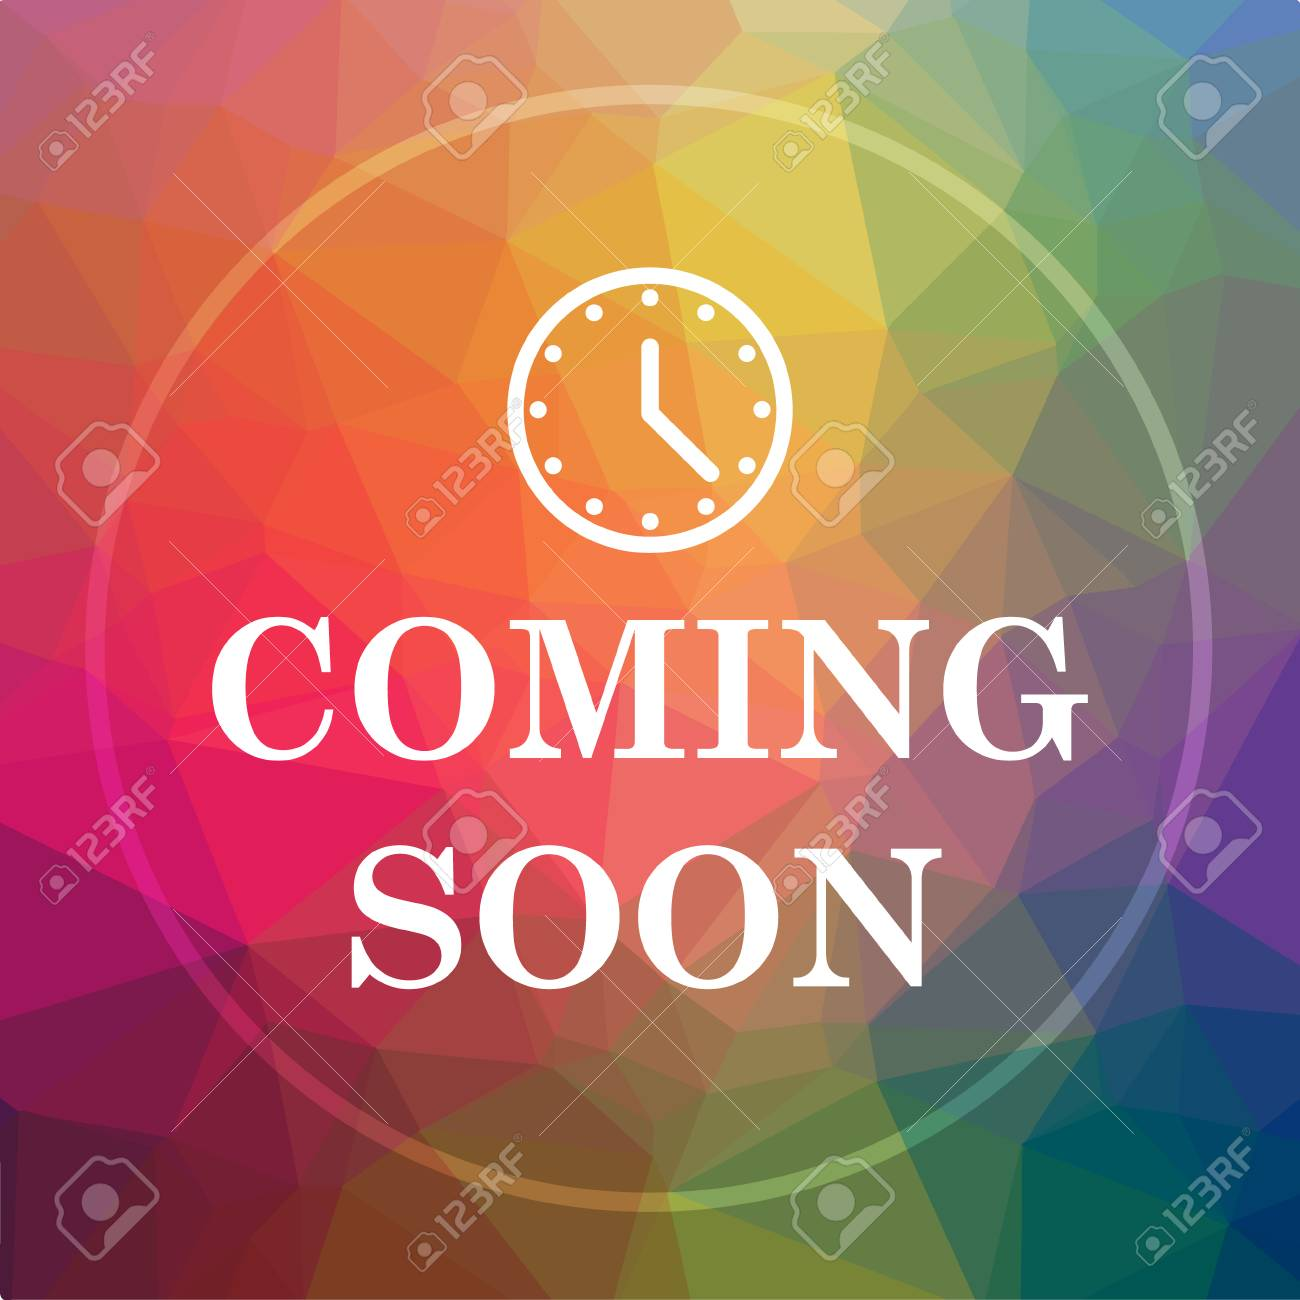 Coming Soon Icon Coming Soon Website Button On Low Poly Background Stock Photo Picture And Royalty Free Image Image 78785555